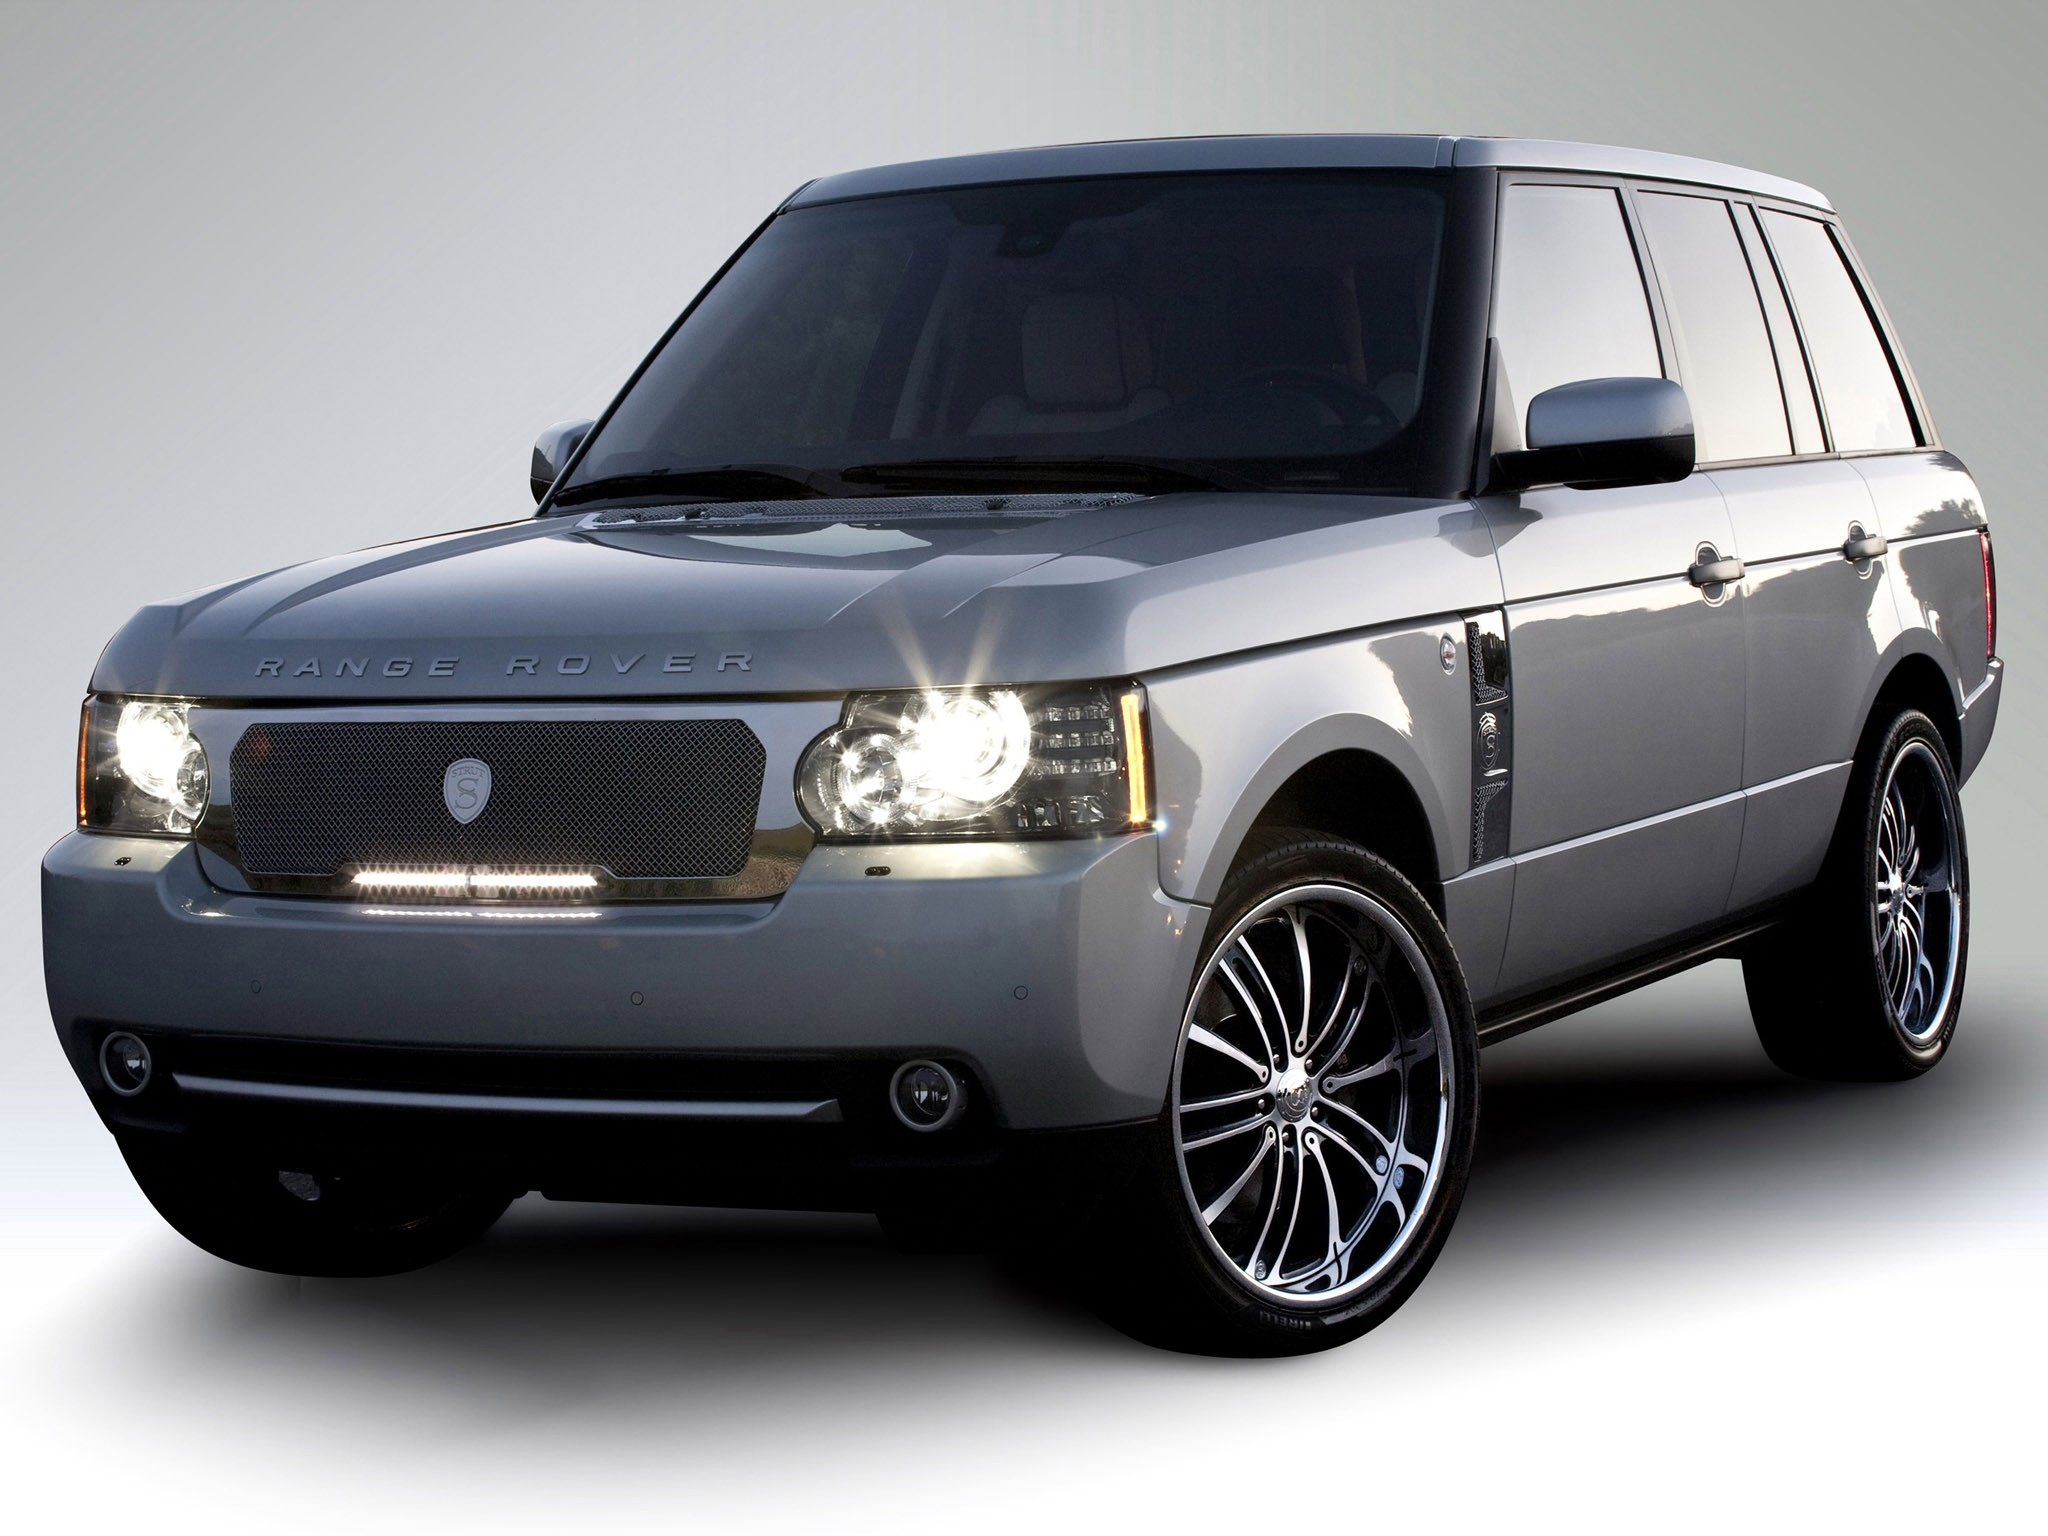 2010 Strut Range Rover Led Illuminated Grille Collection